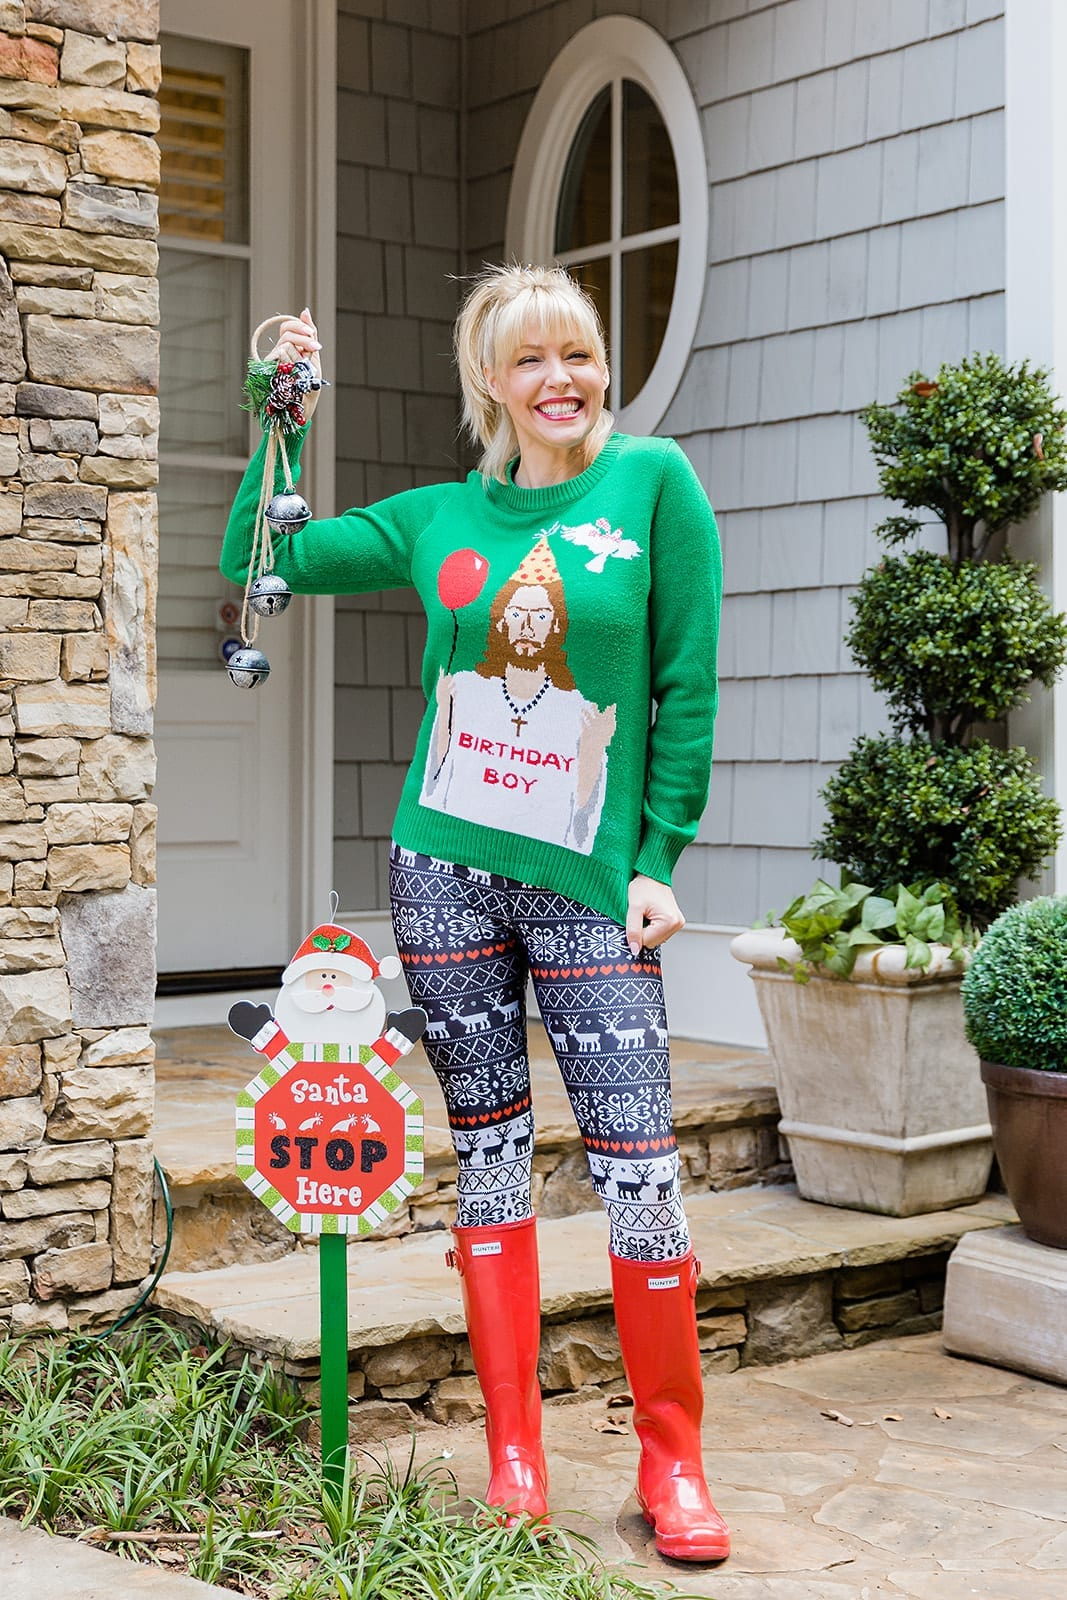 Birthday Boy Christmas Sweater. Funny Holiday sweater for Ugly Sweater Christmas party outfit! Hunter Red Rain boots.